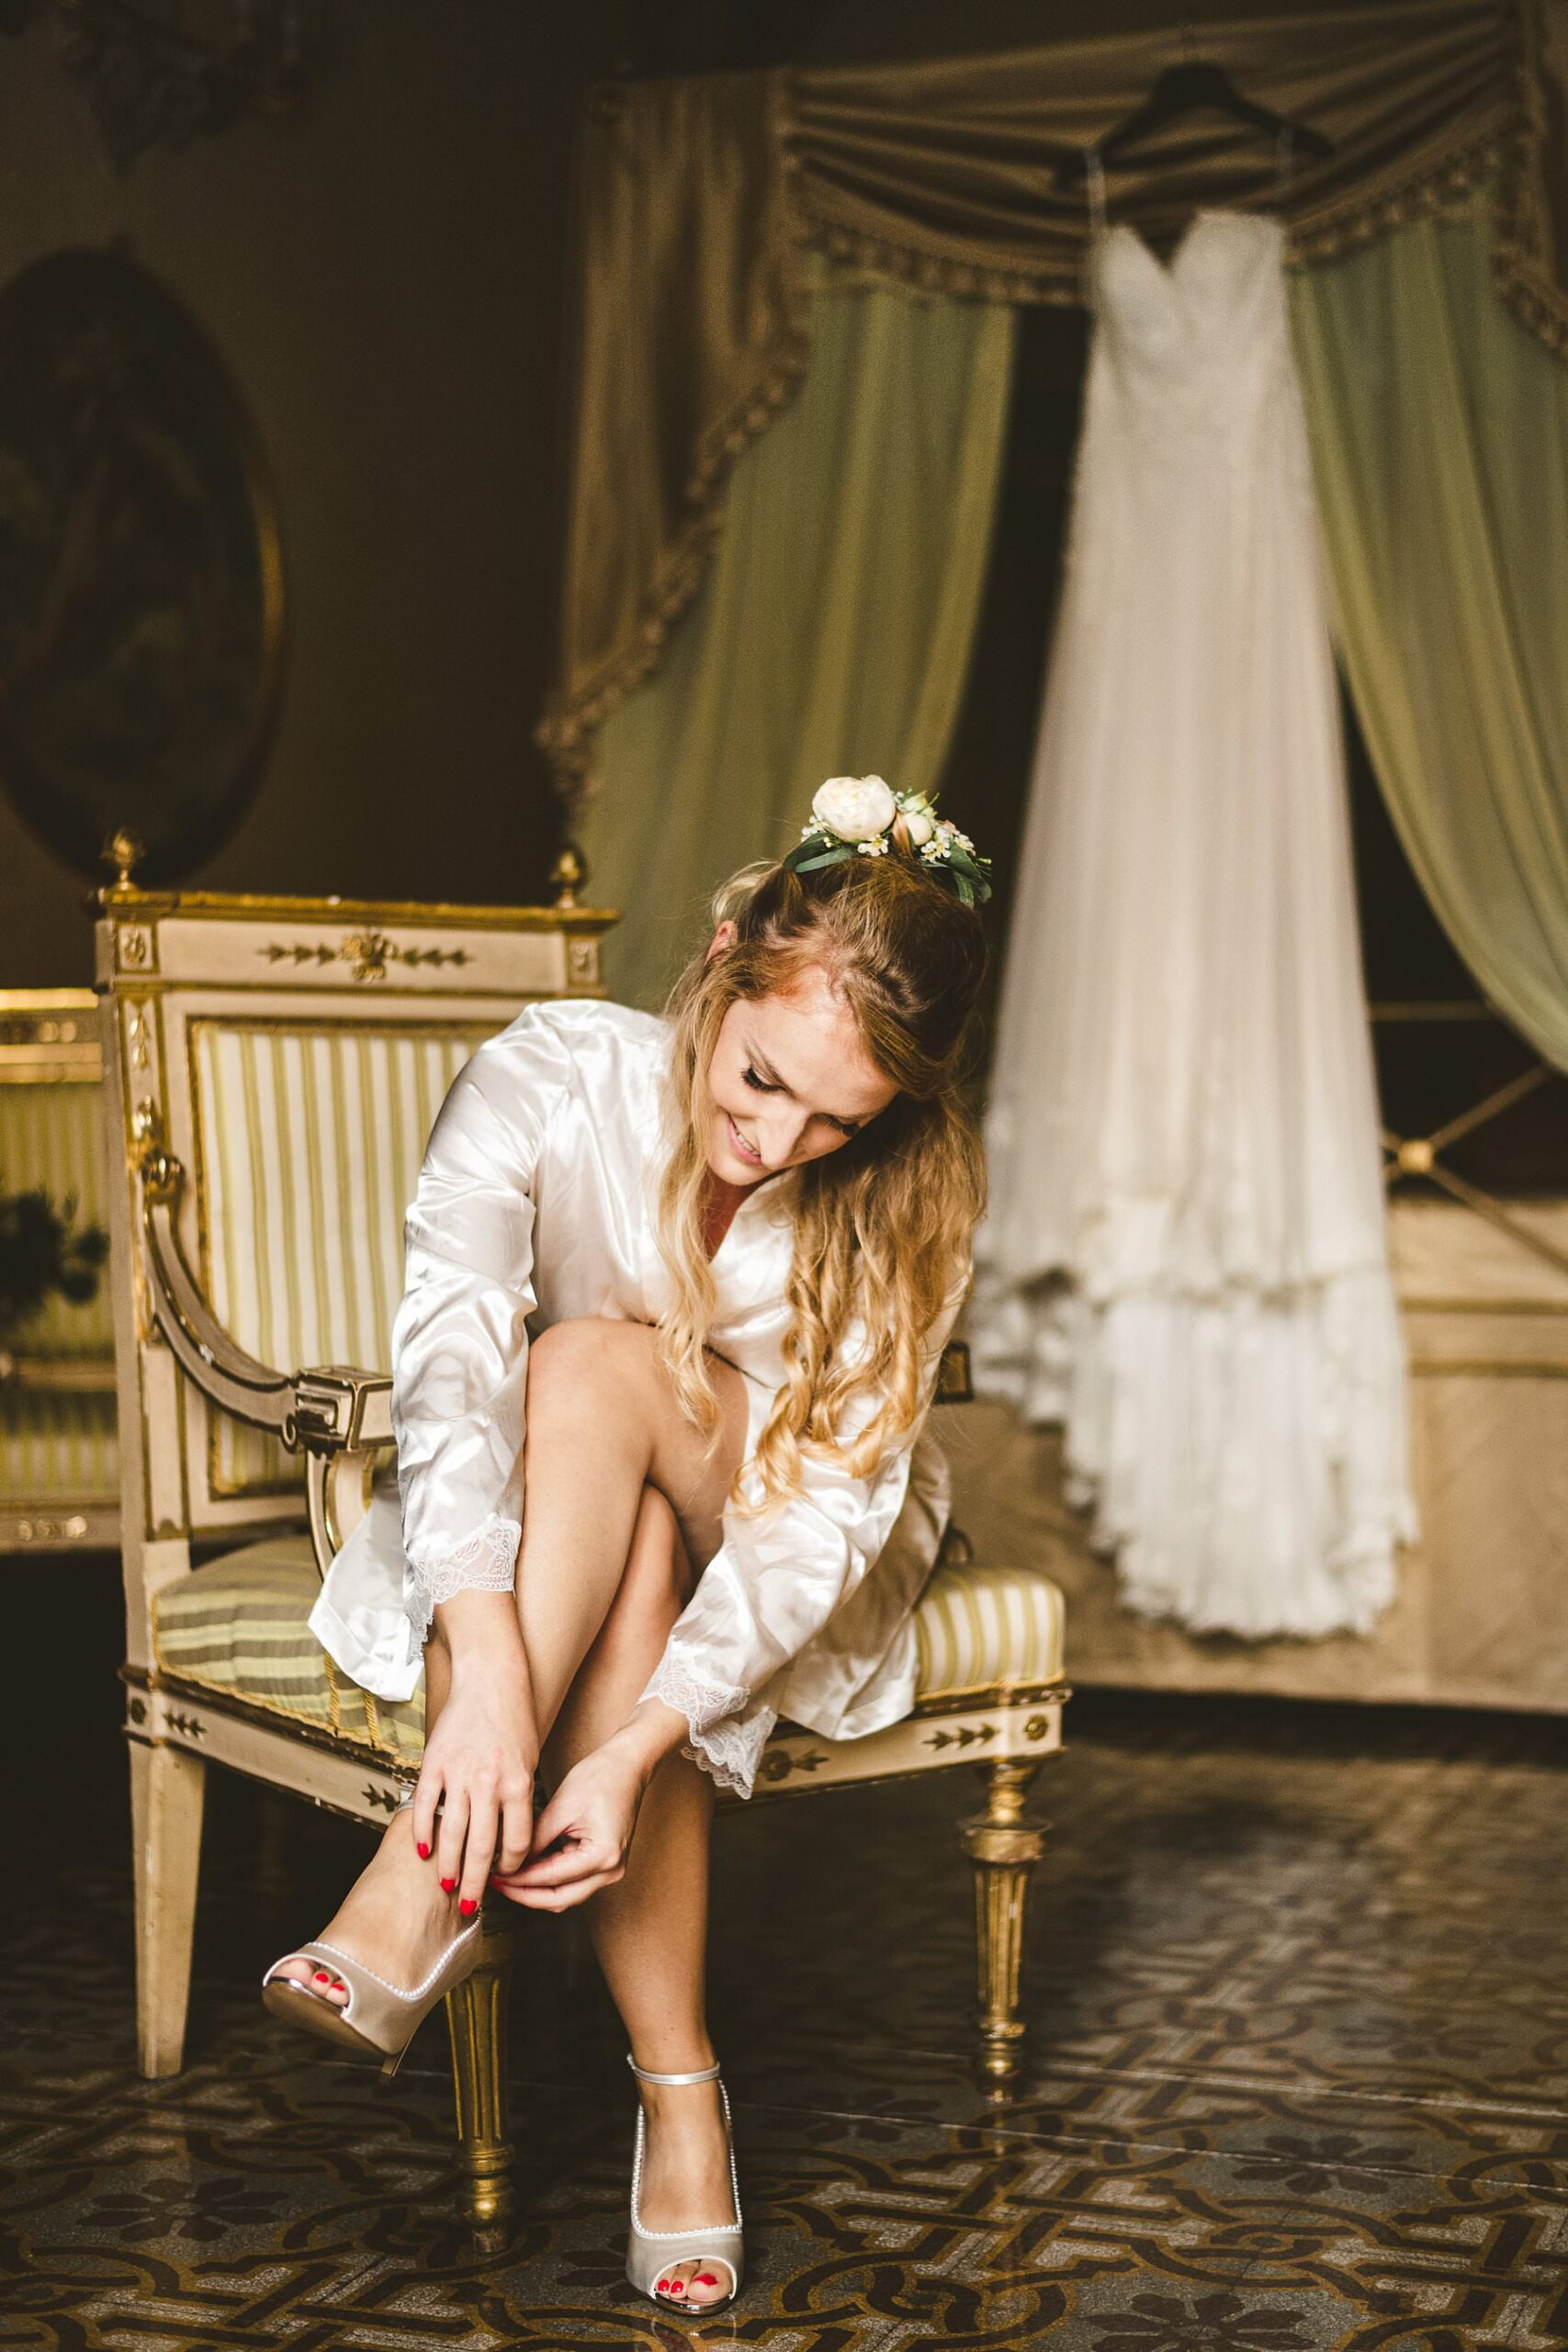 Beautiful bride Poppy almost ready to wear her wedding gown at Palazzo Coli Bizzarrini in the heart of Siena